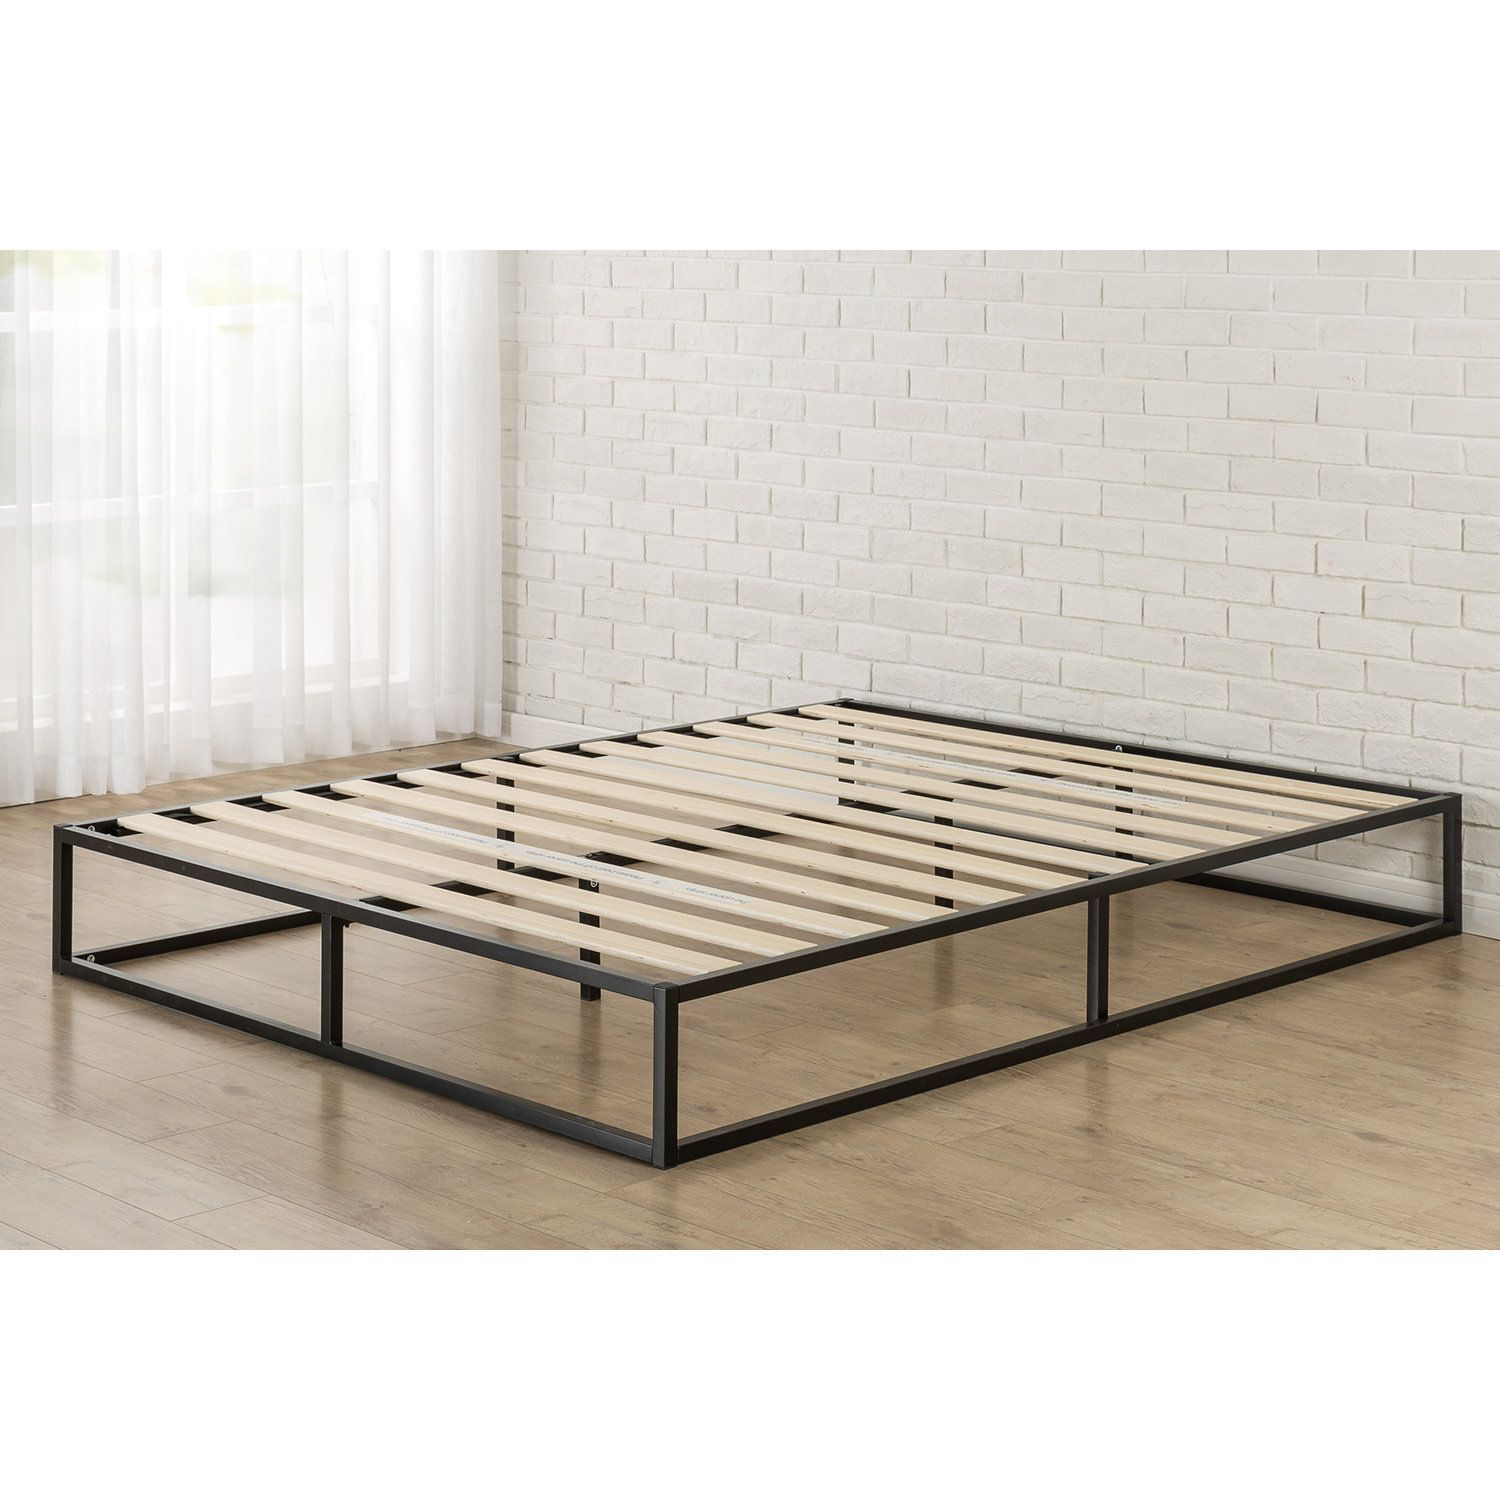 Overstock Com Online Shopping Bedding Furniture Electronics Jewelry Clothing More Metal Platform Bed Low Profile Bed Frame Full Size Bed Frame